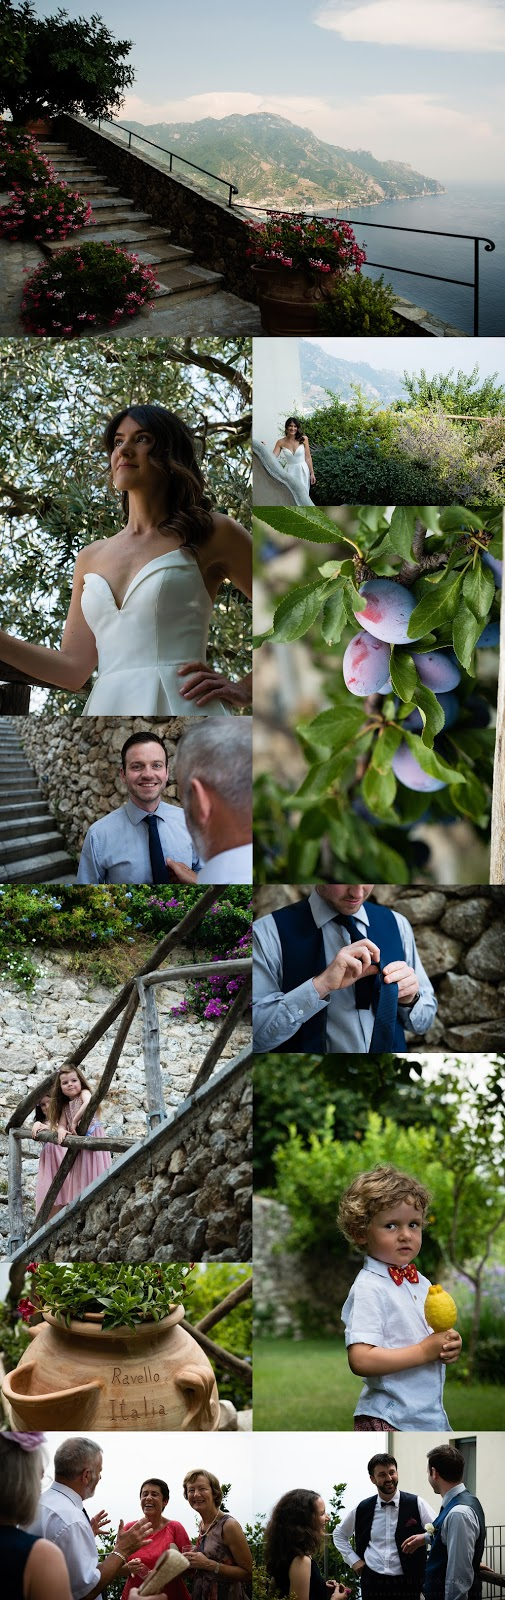 Rustic modern wedding details in Ravello